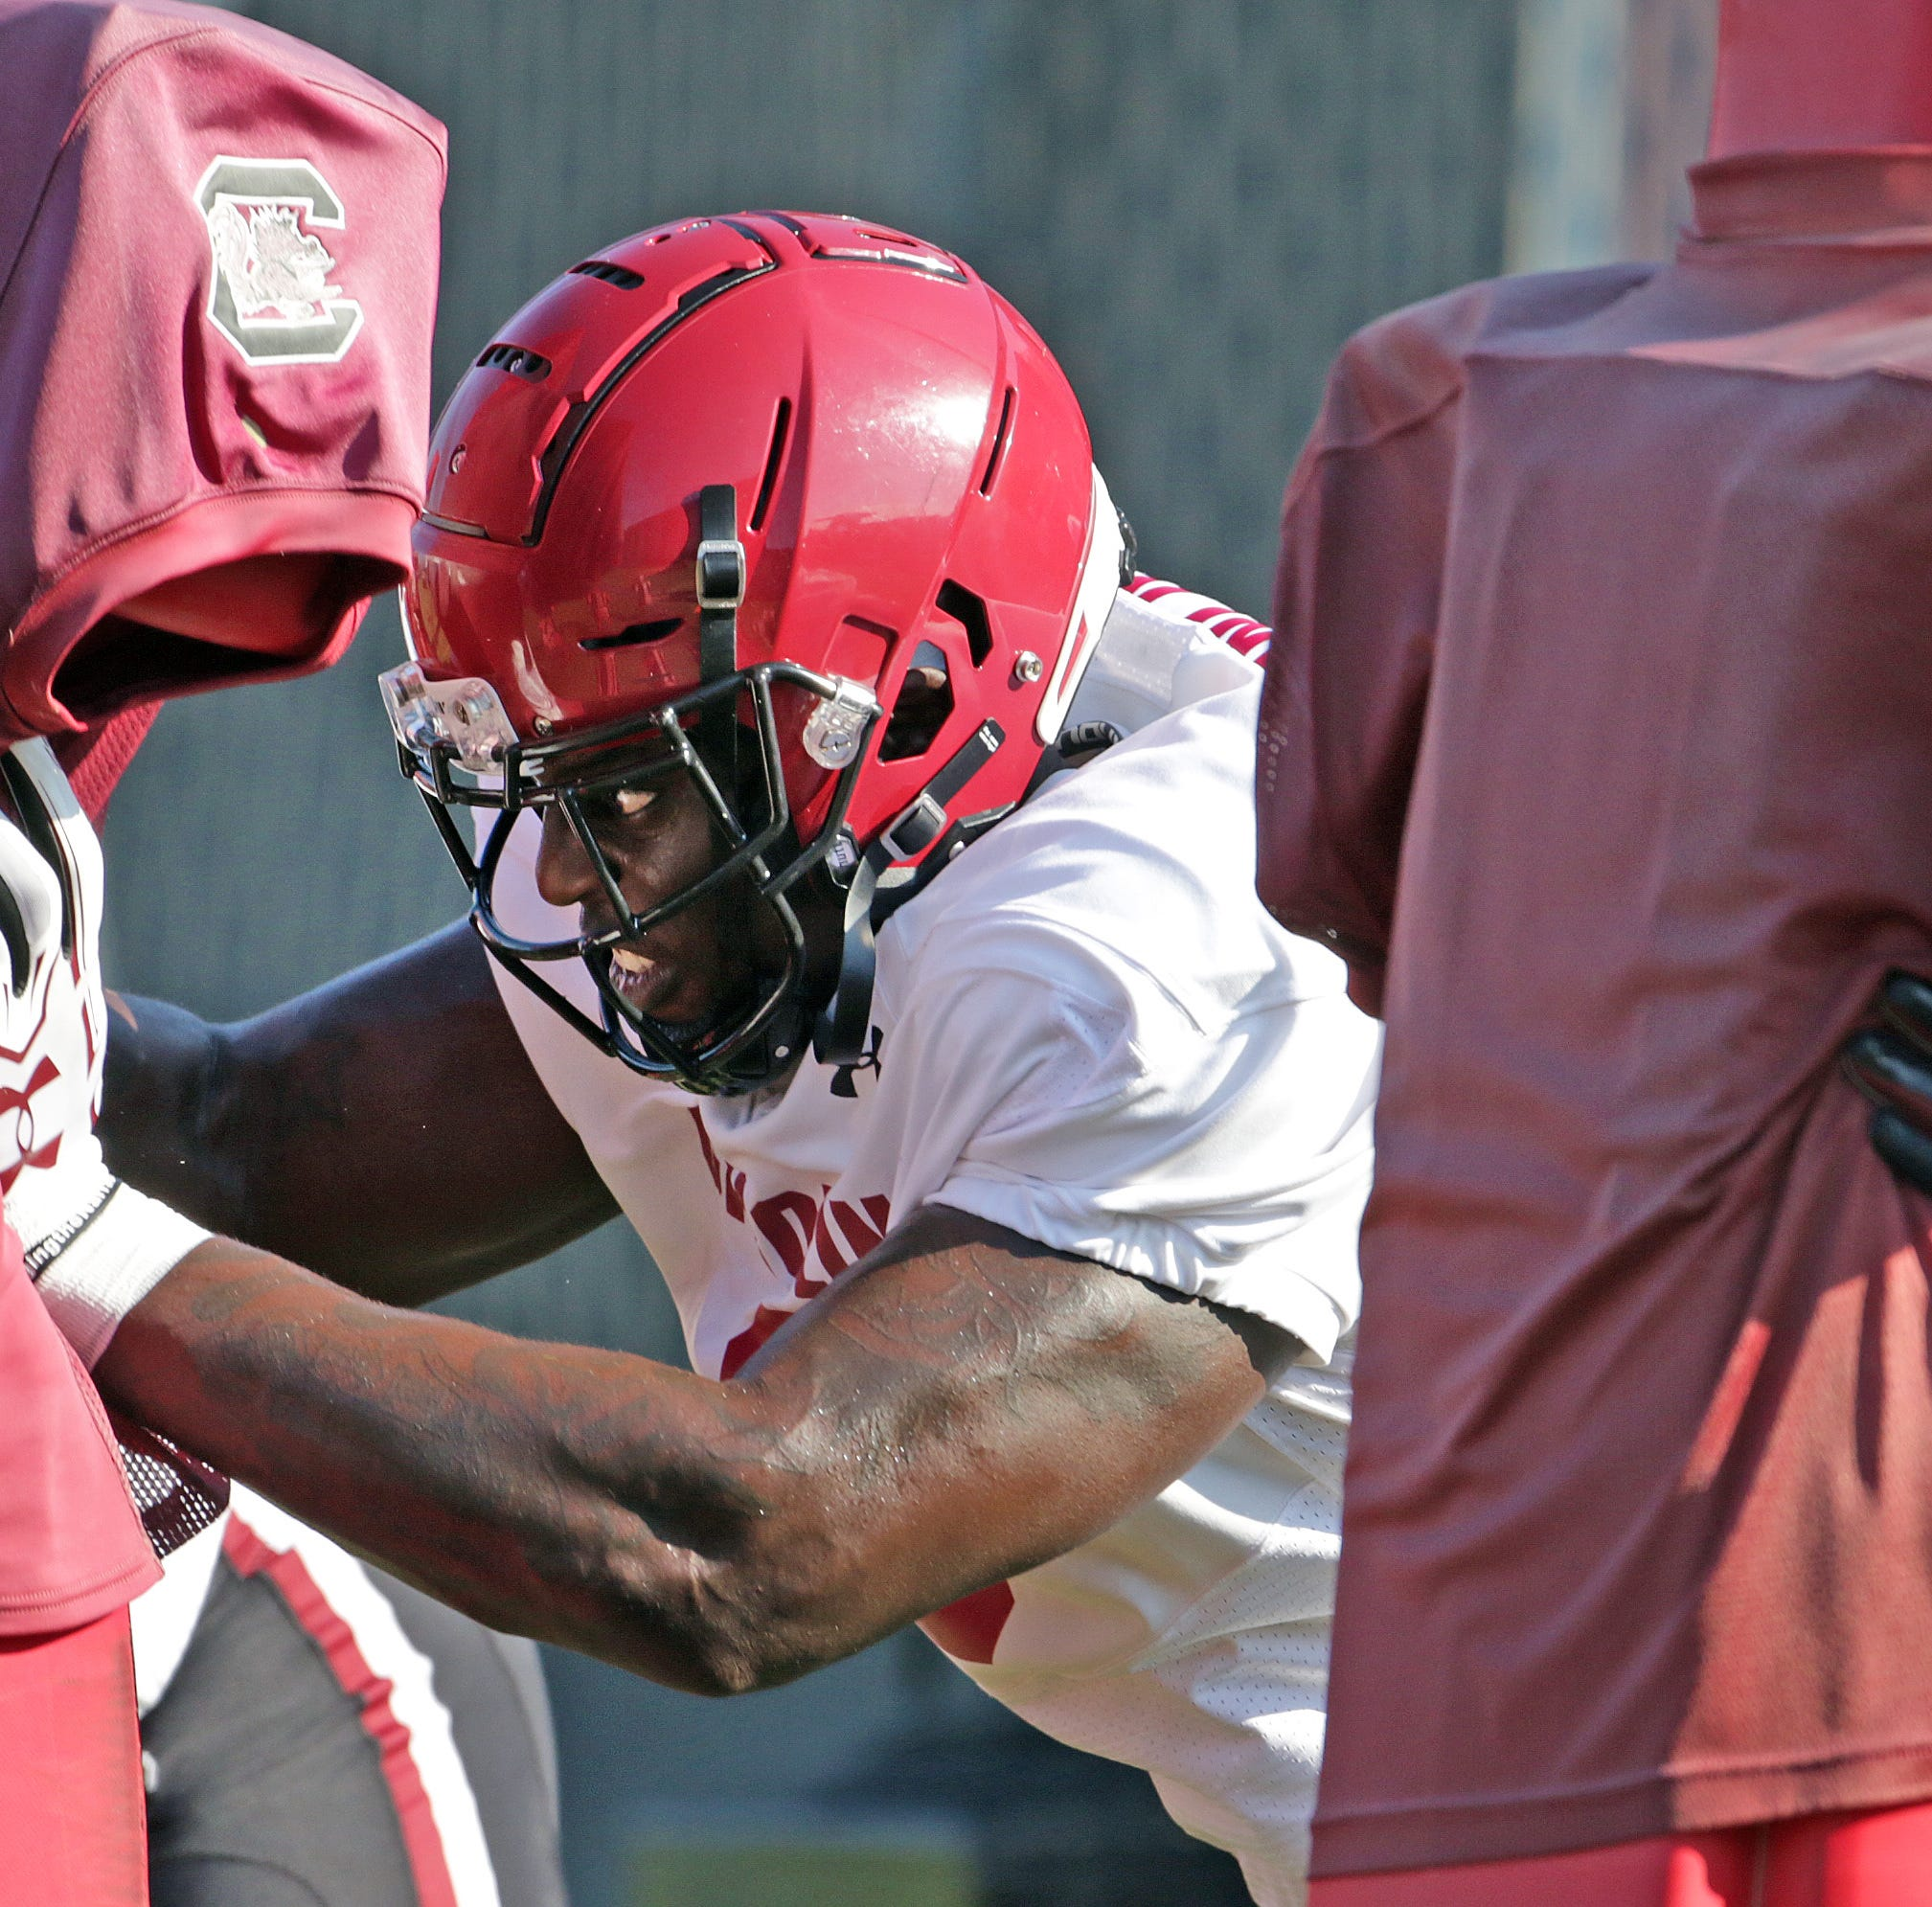 Once homeless, South Carolina's Javon Kinlaw found new lease on life through football